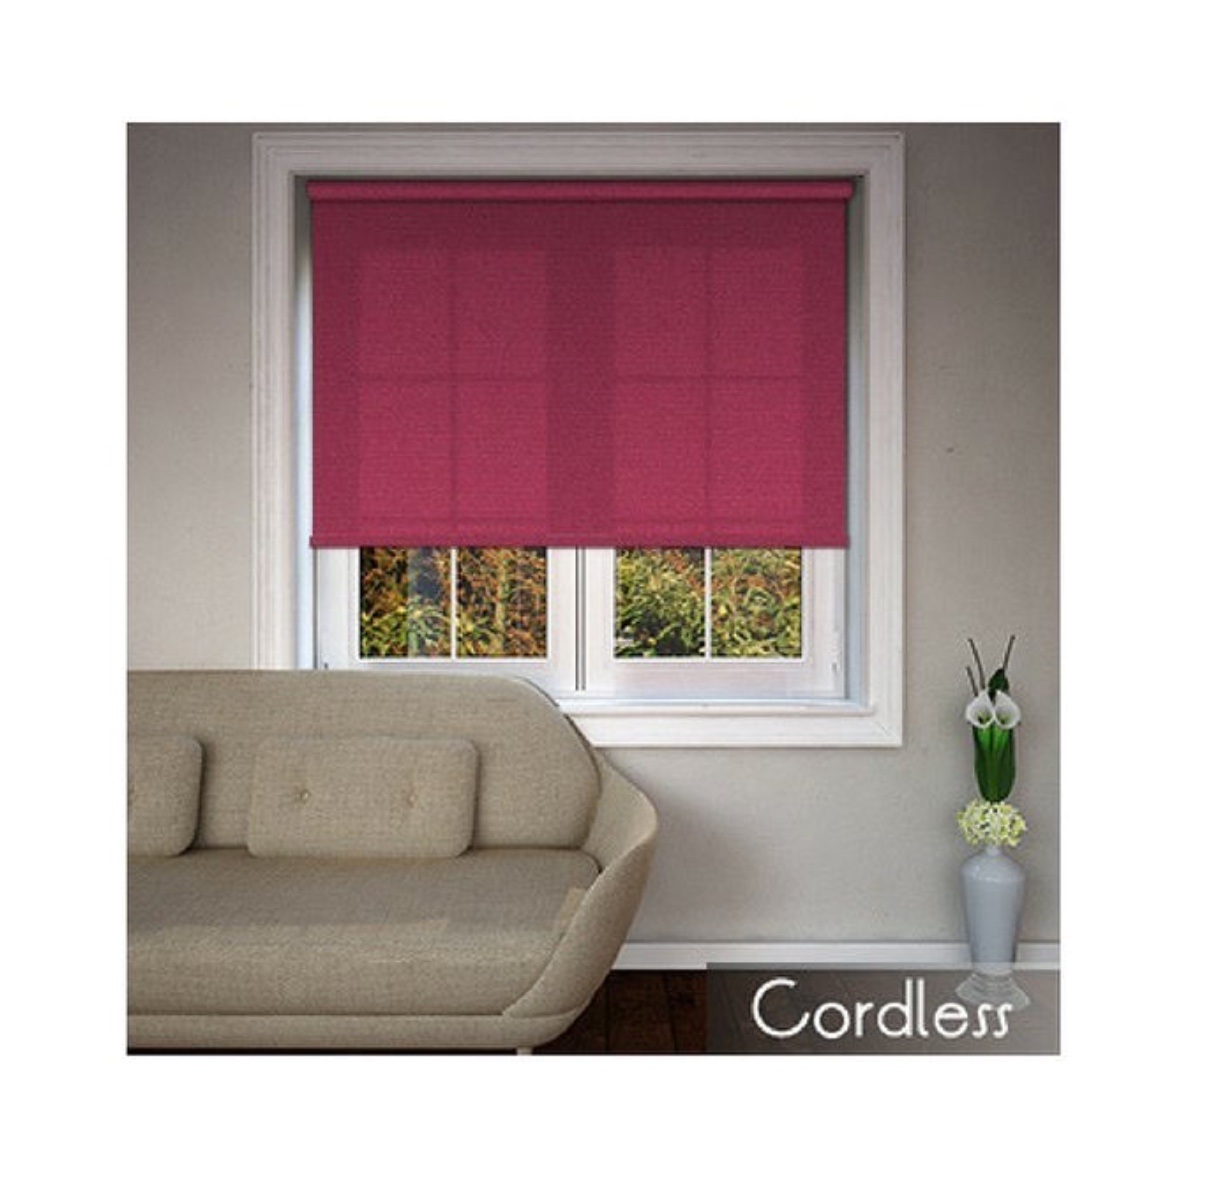 A picture of a bright pink cordless window blind